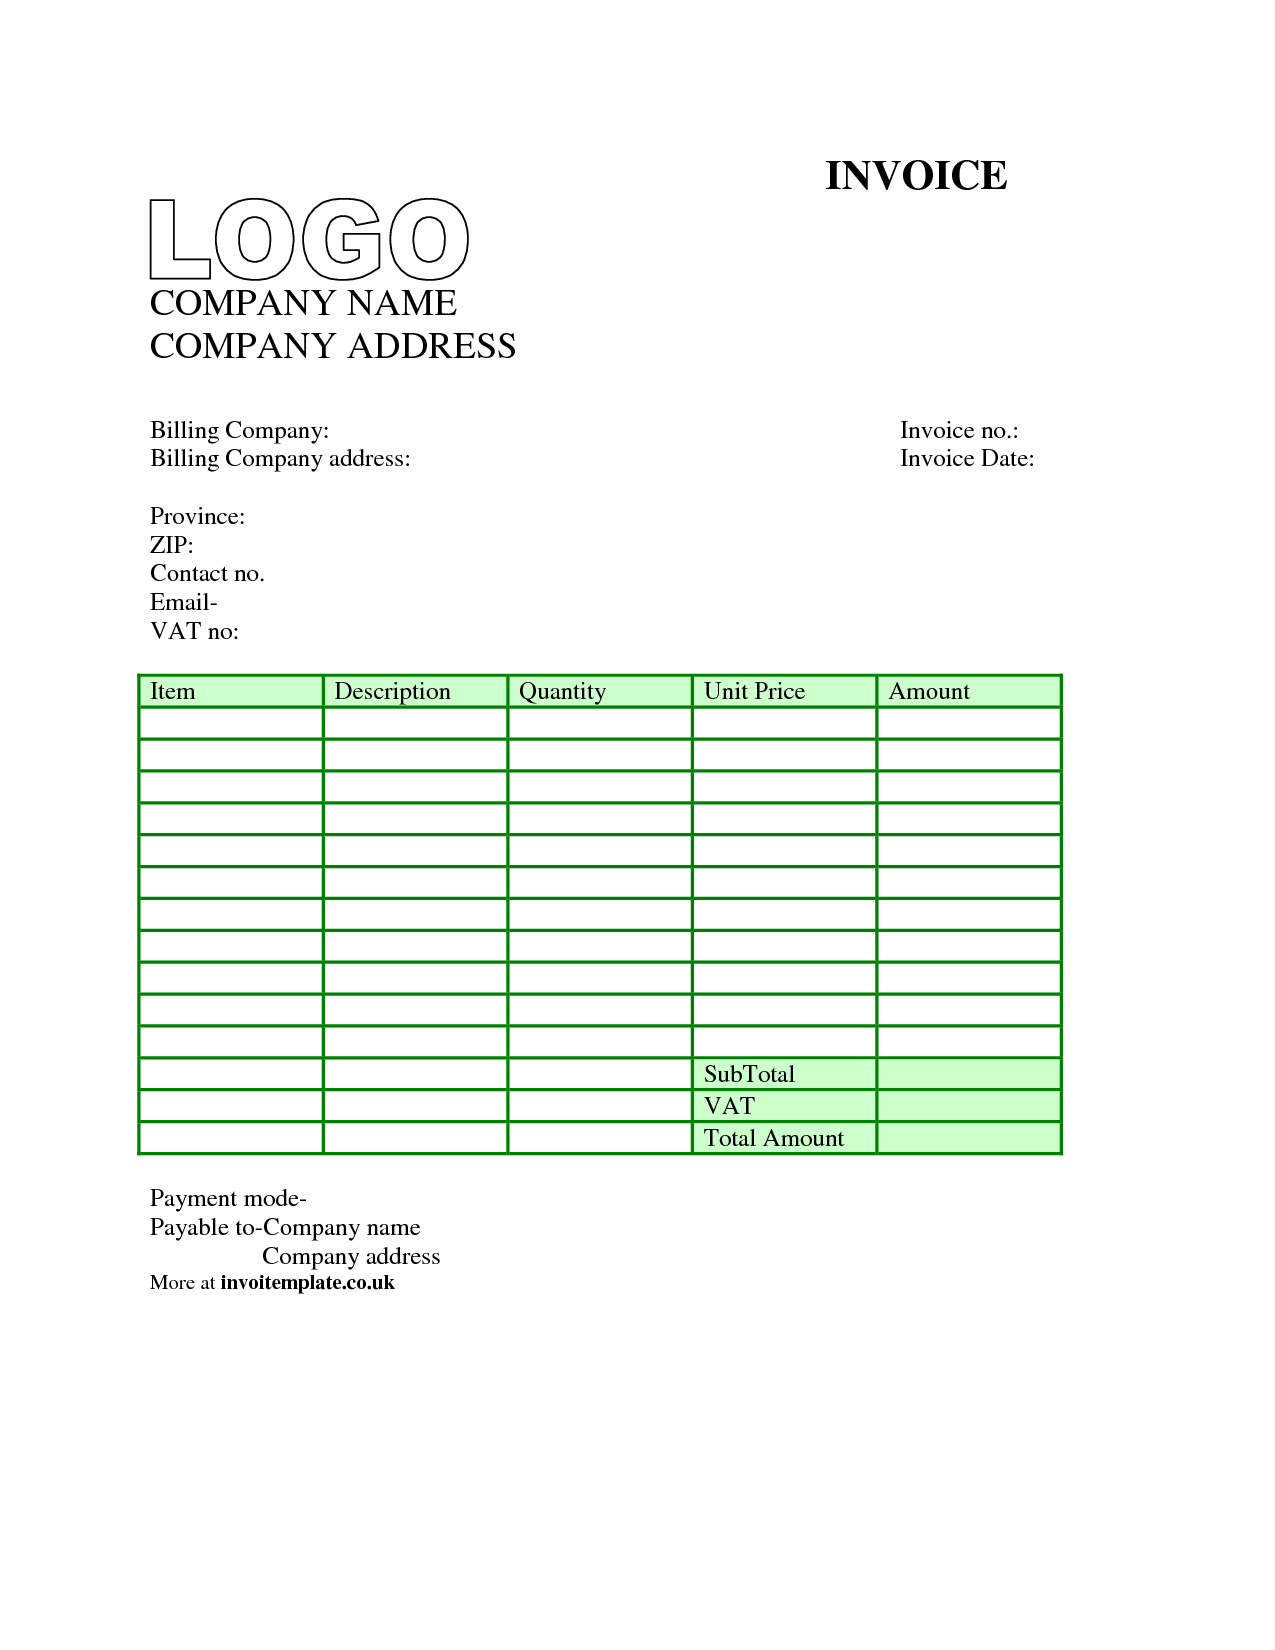 contractor invoice template excel - thebridgesummit.co, Invoice templates